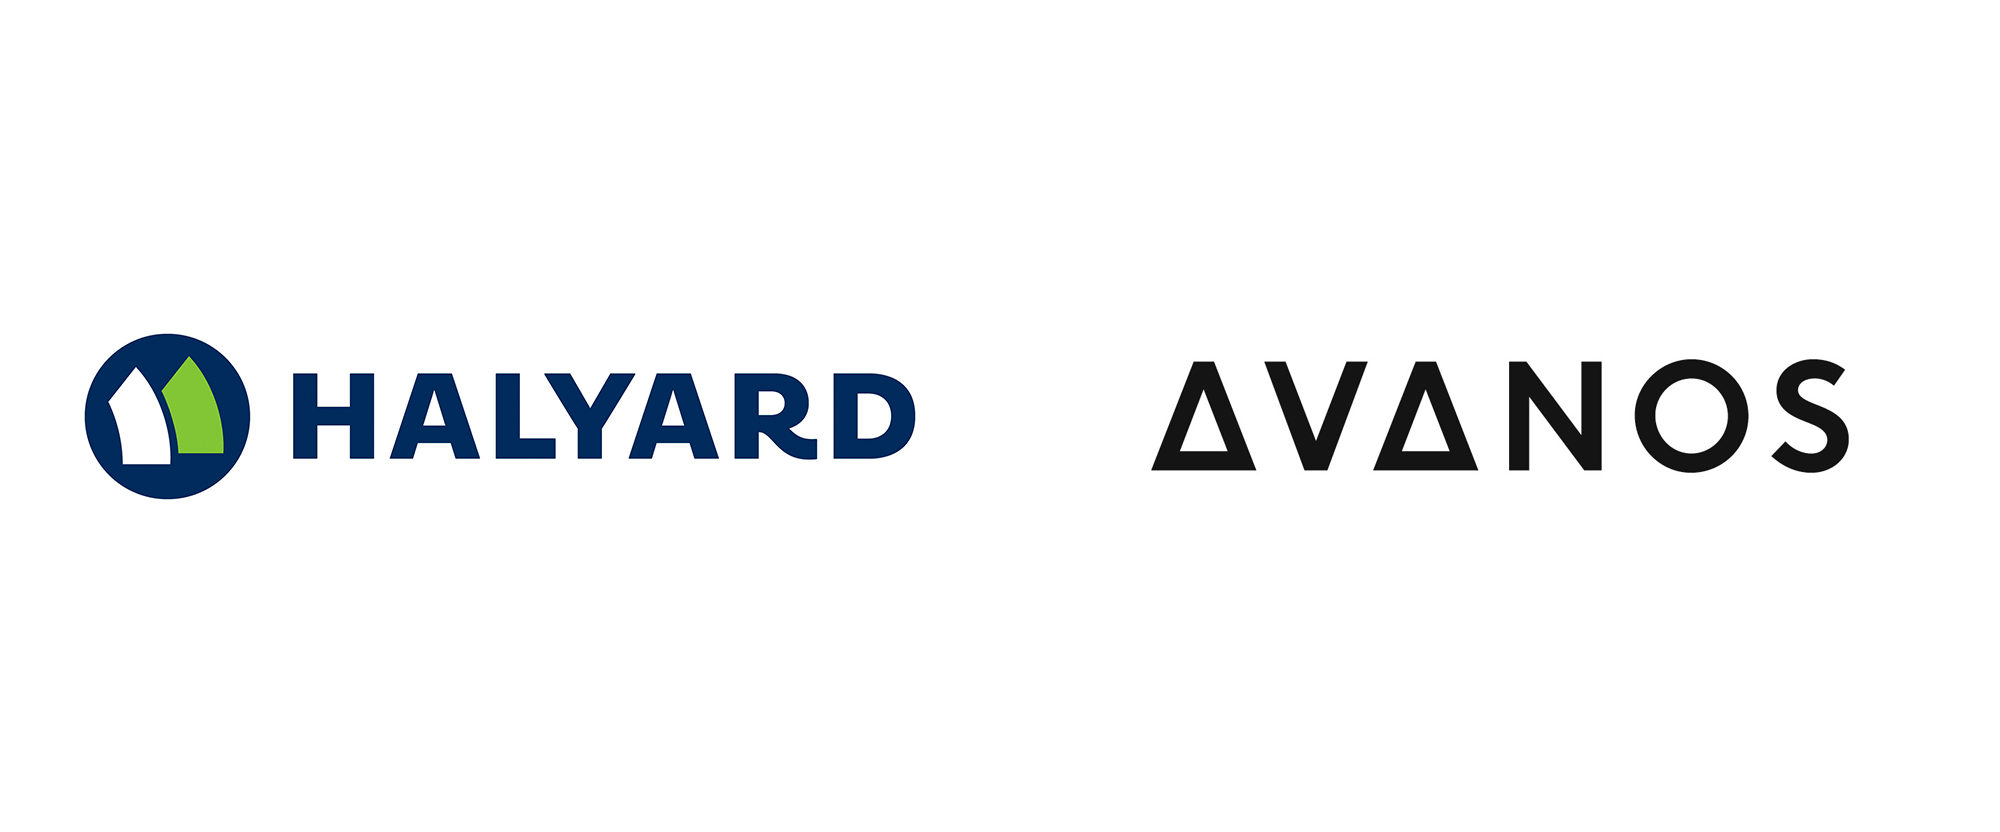 New Name, Logo, and Identity for Avanos by MerchantCantos